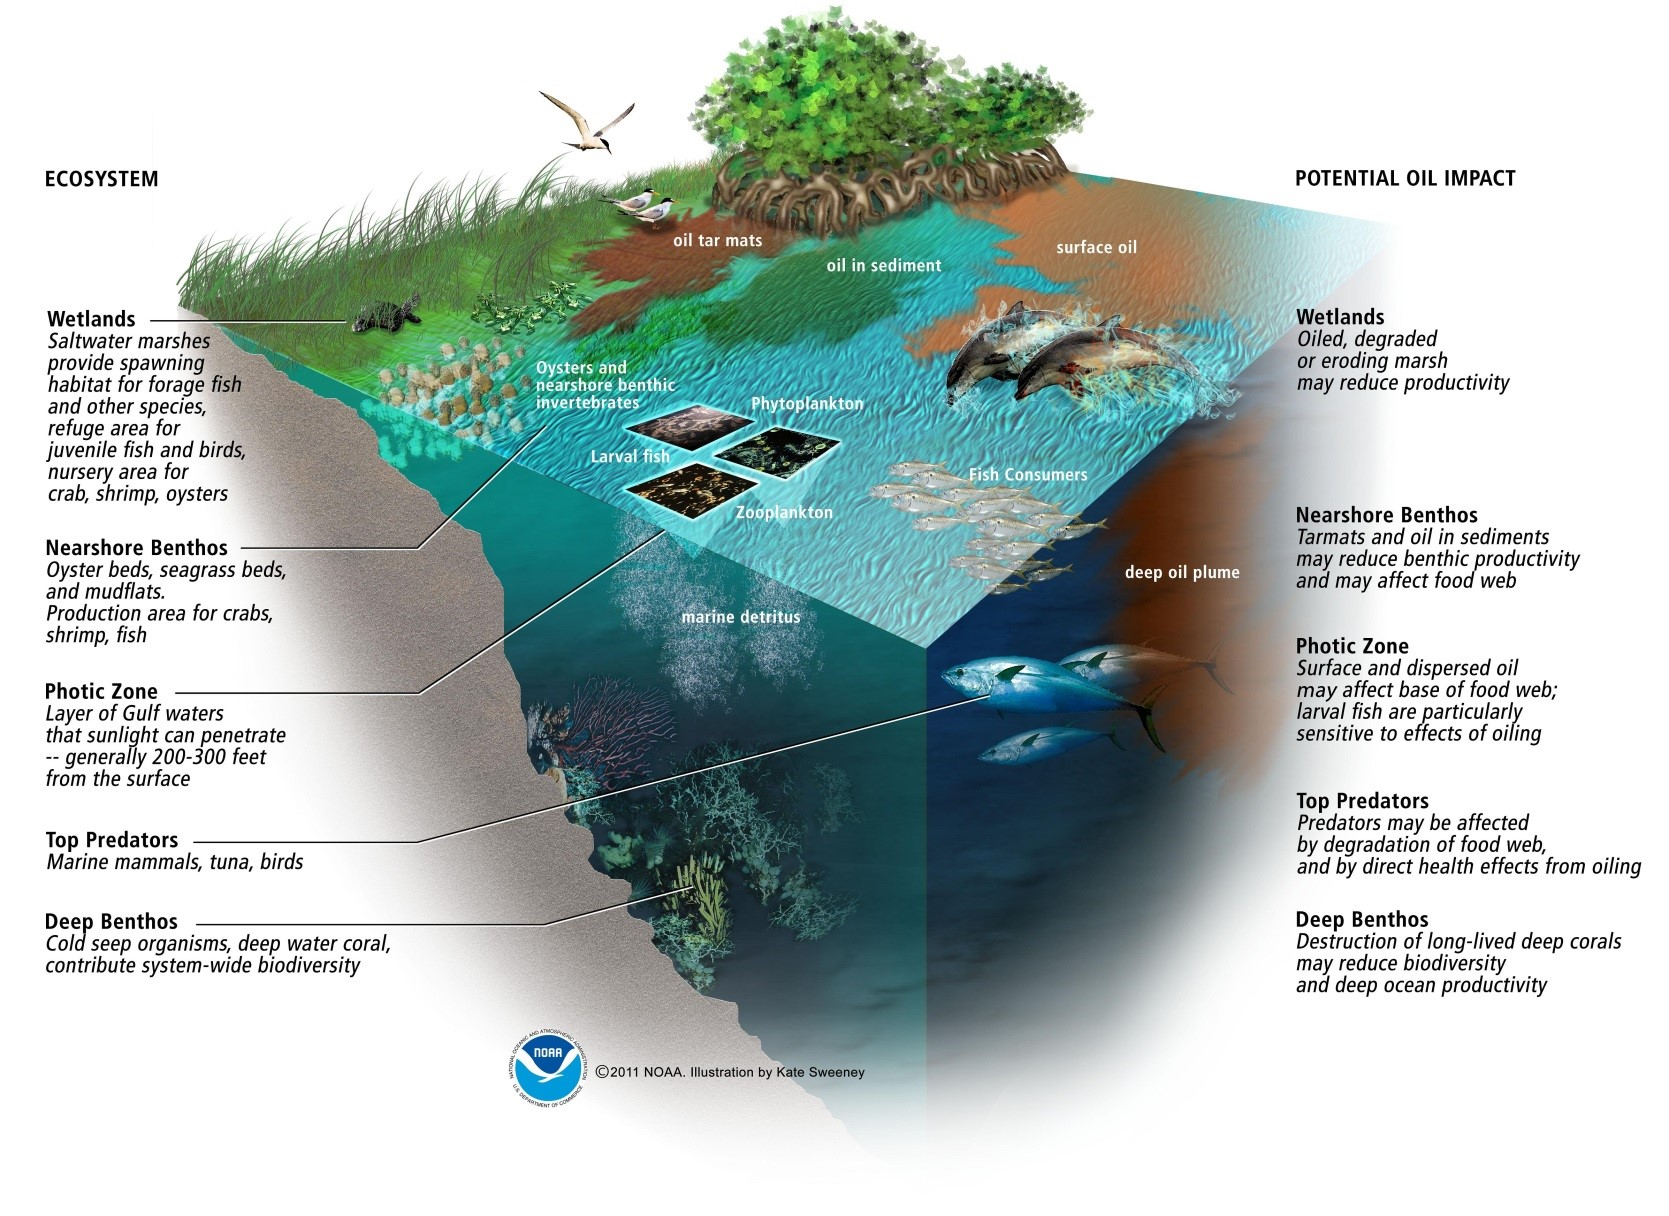 An infographic depicting an ecosystem with oil impacting various areas.